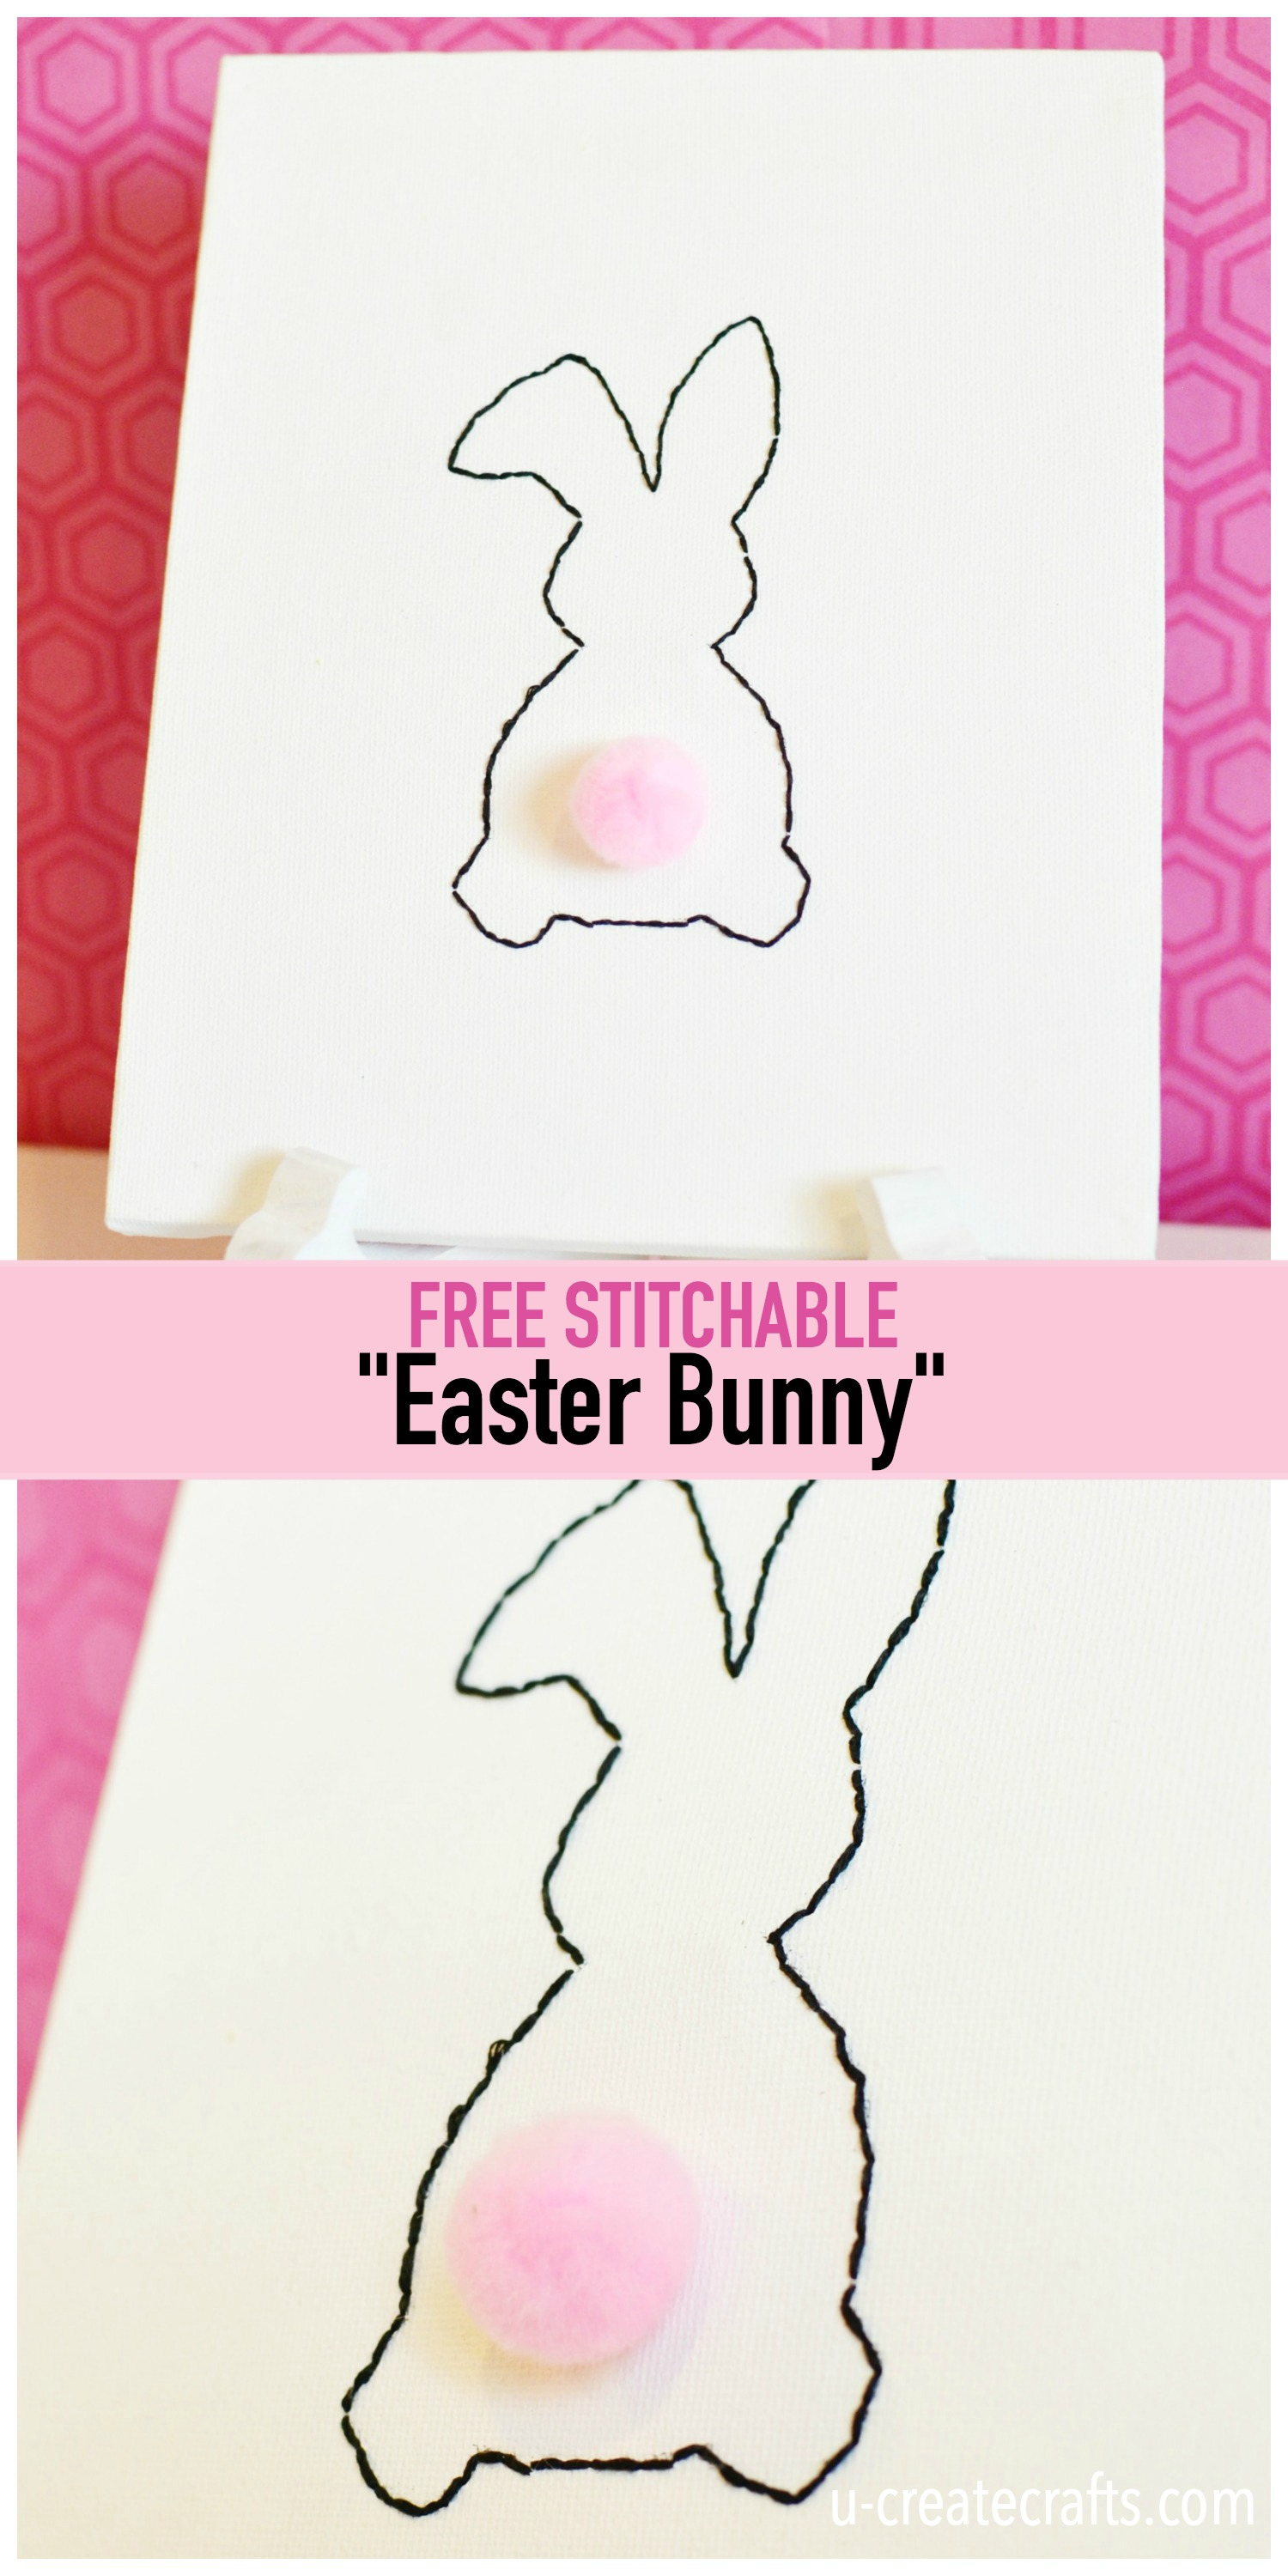 Free Stitchable: Easter Bunny - fun project for the kids!